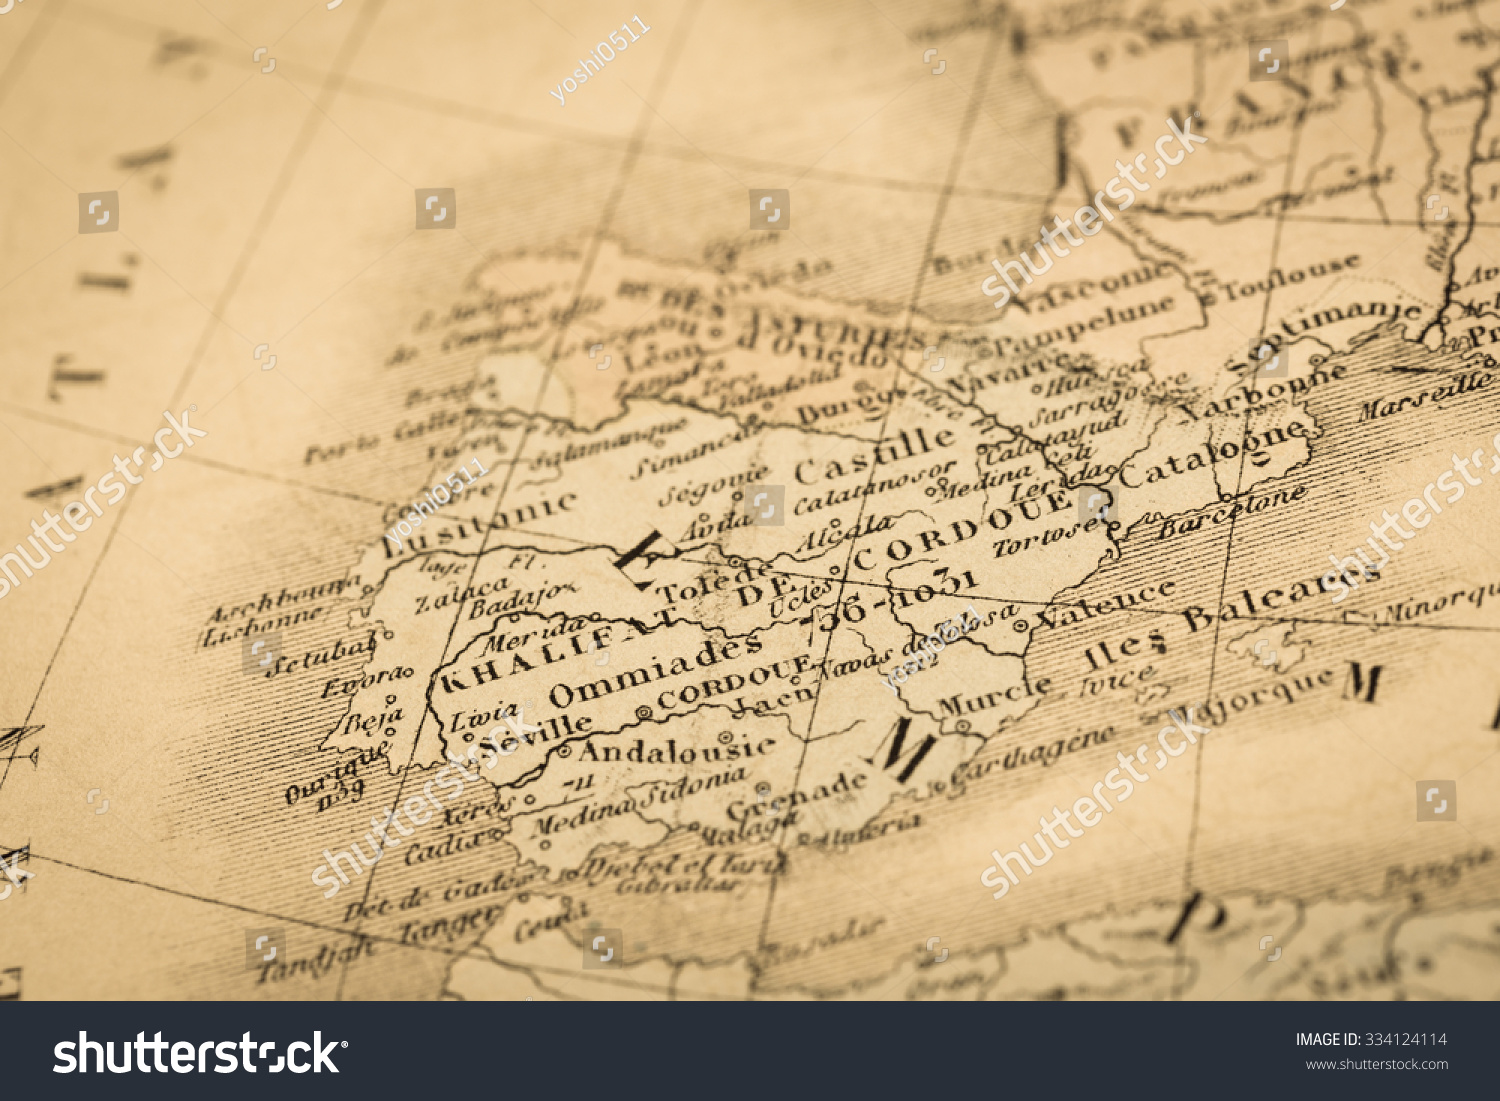 Antique World Map Spain Portugal Stock Photo Shutterstock - Portugal map in world map